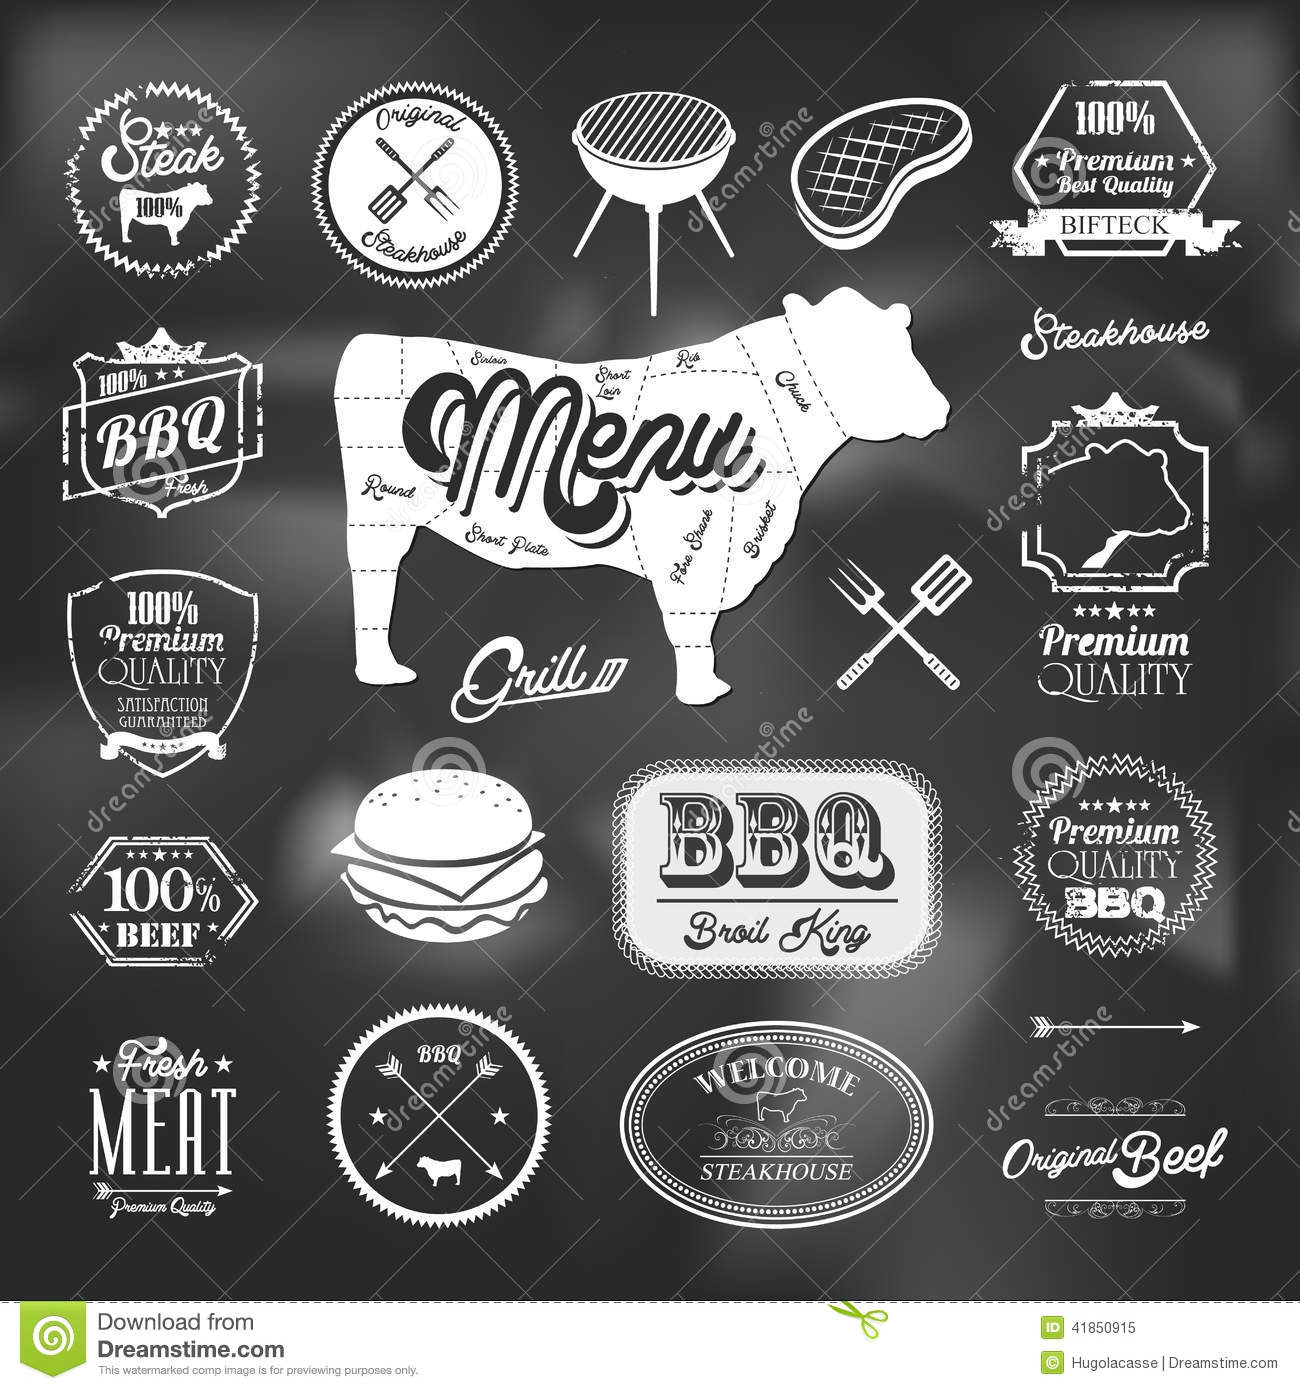 Beef specialty restaurant elements design stock vector